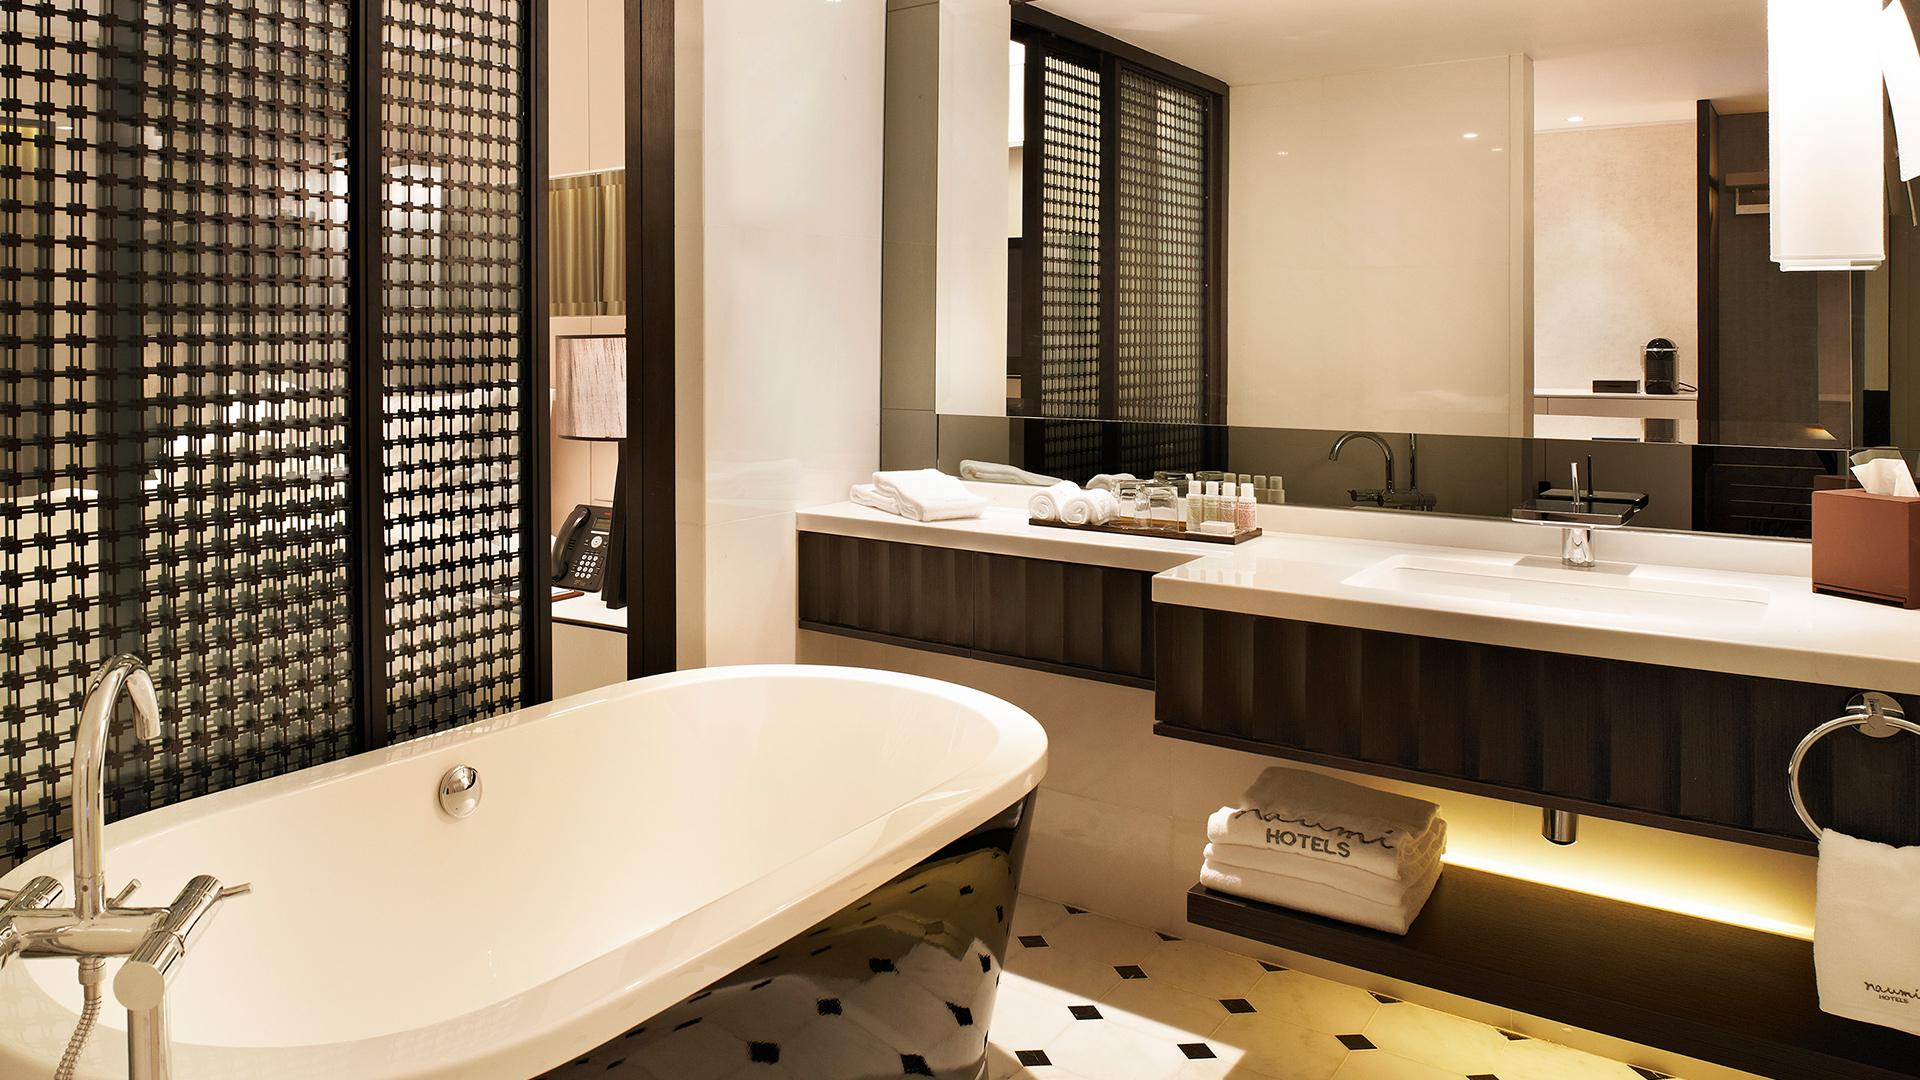 Oasis Room image 1 at Naumi Hotel Singapore by null, null, Singapore